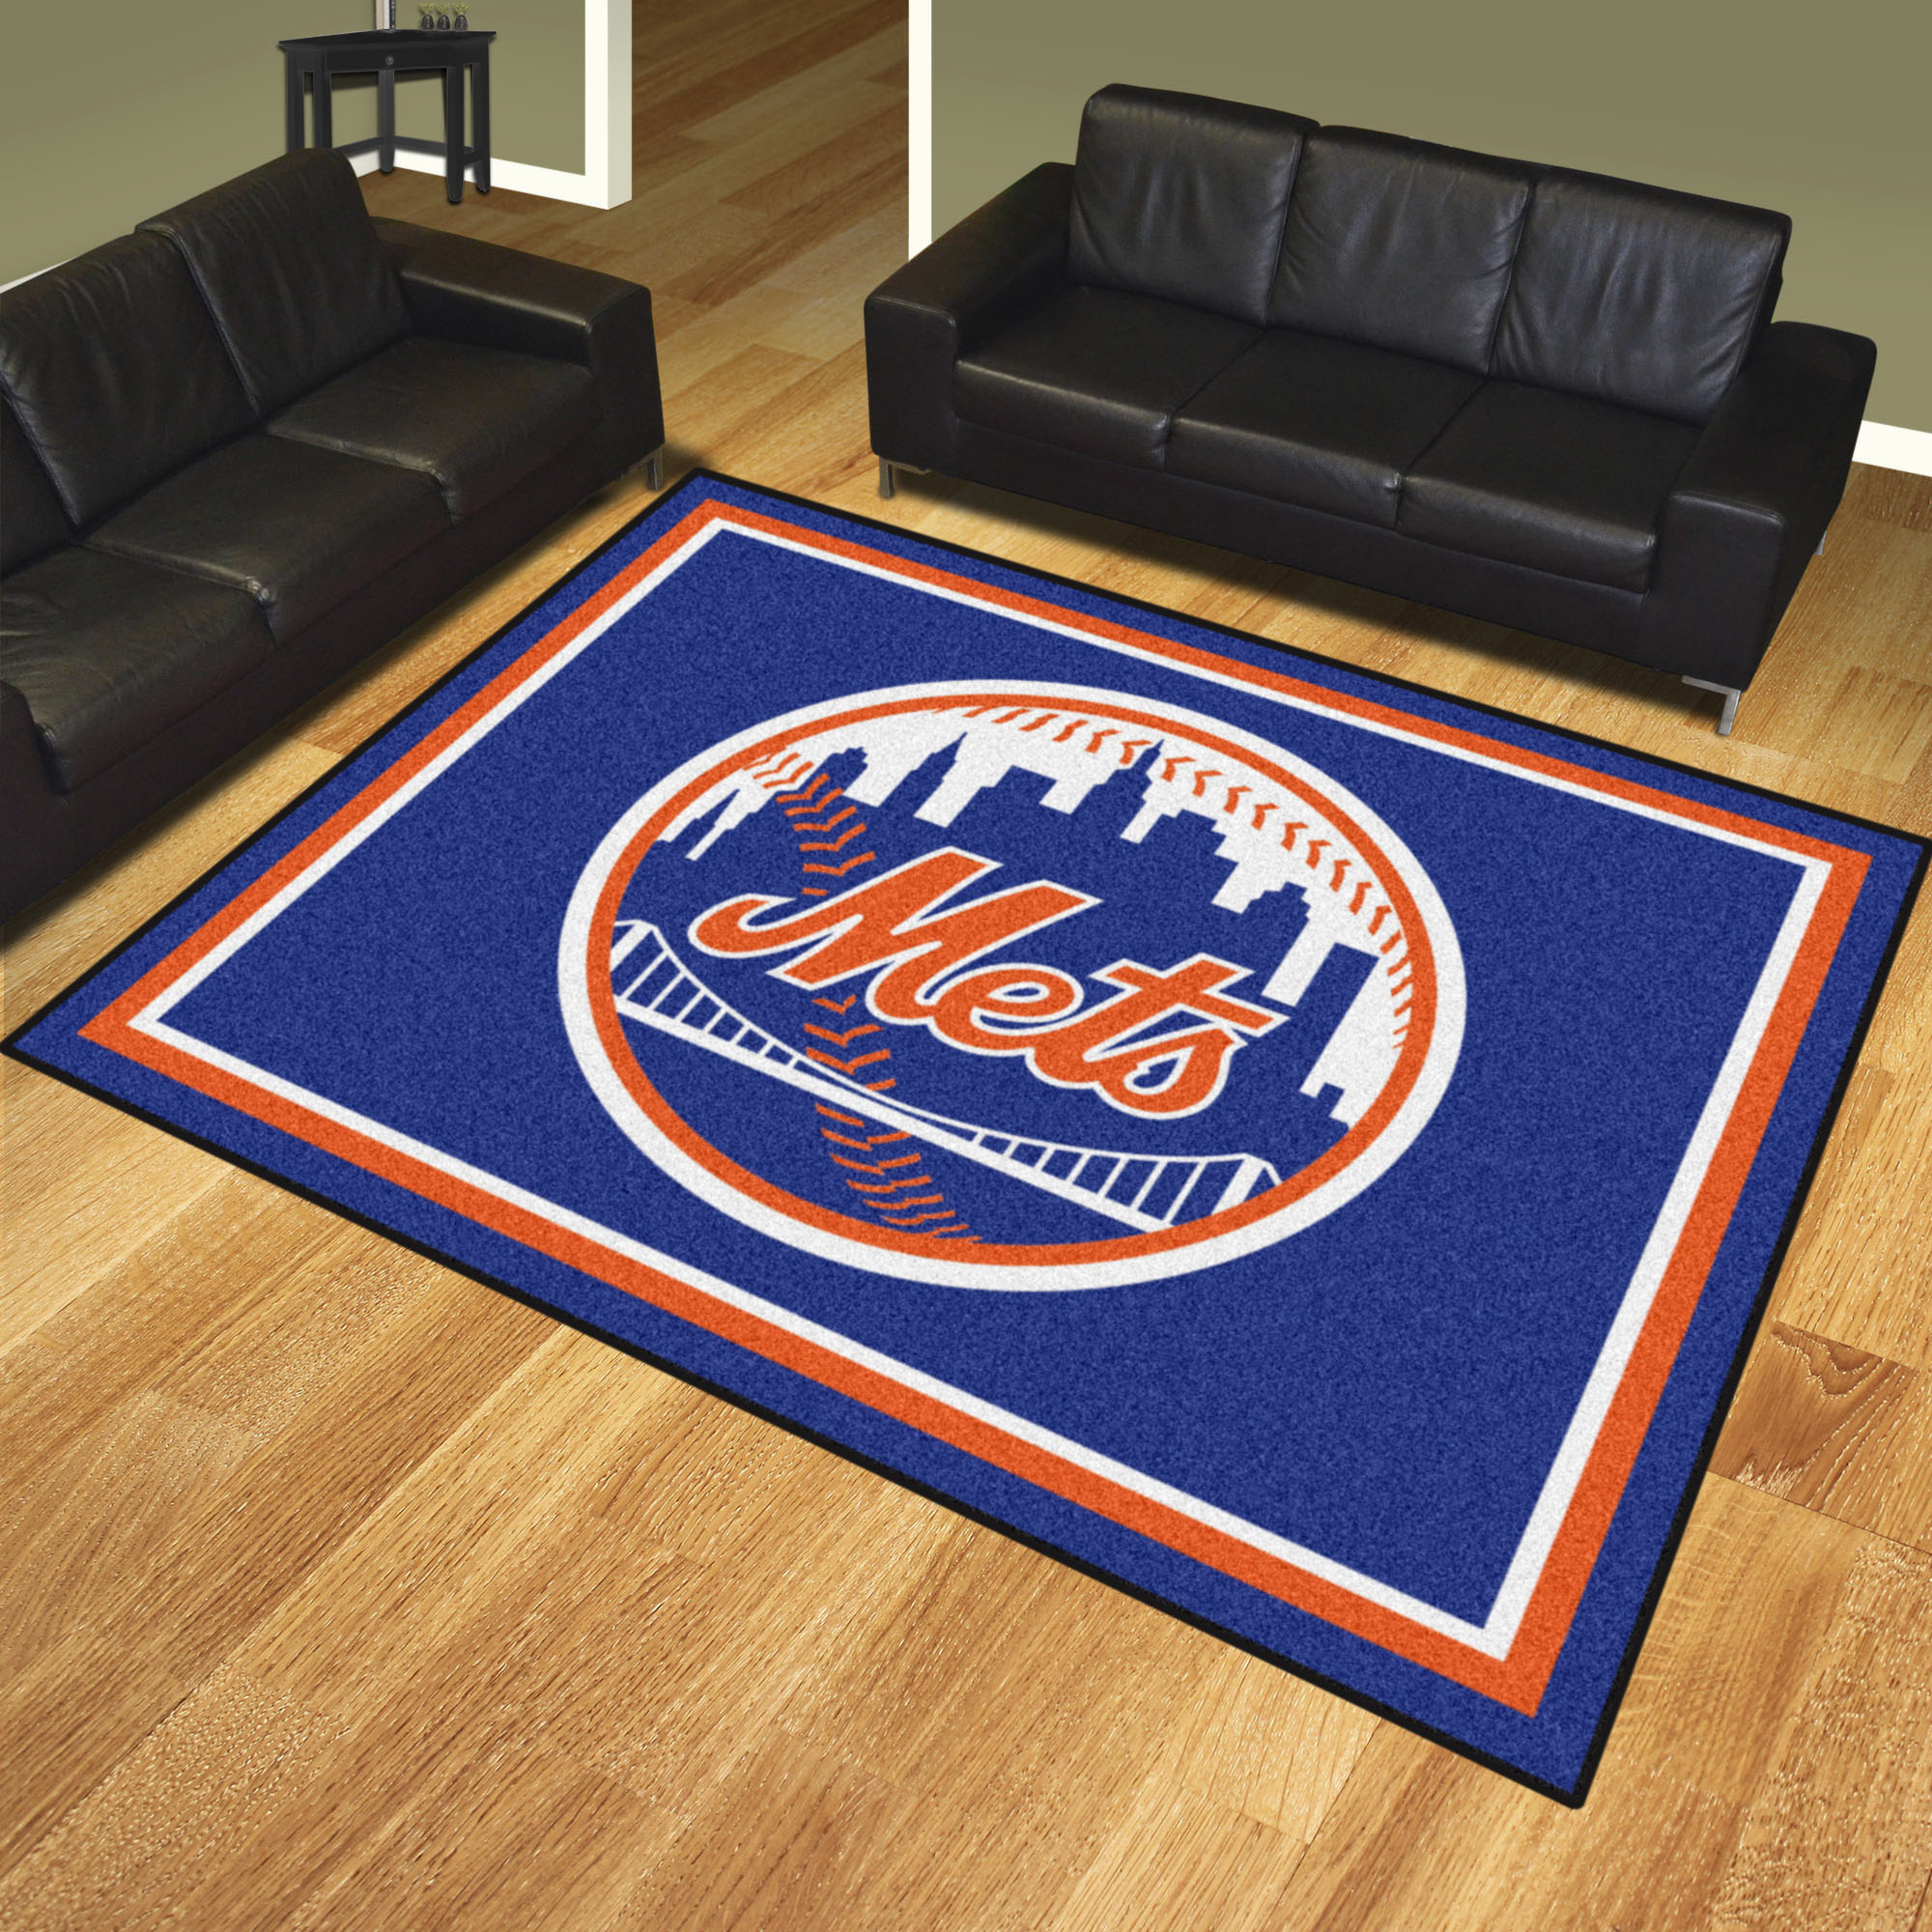 New York Mets Ultra Plush 8x10 Area Rug